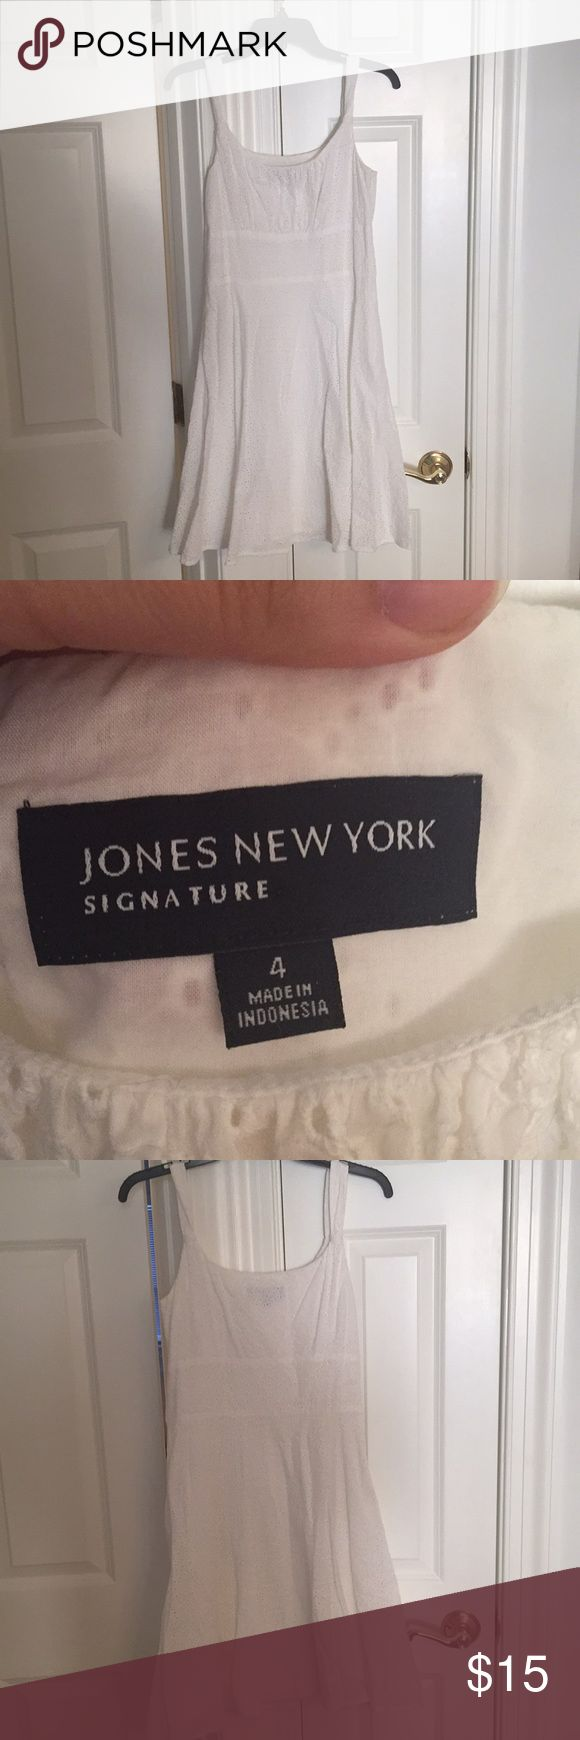 Fully lined white eyelet sundress from Jones NY This is a flattering, fully lined white eyelet sundress from Jones New York. Very pretty fabric and not see through. Worn a few times but in great condition. Size 4. Jones New York Dresses